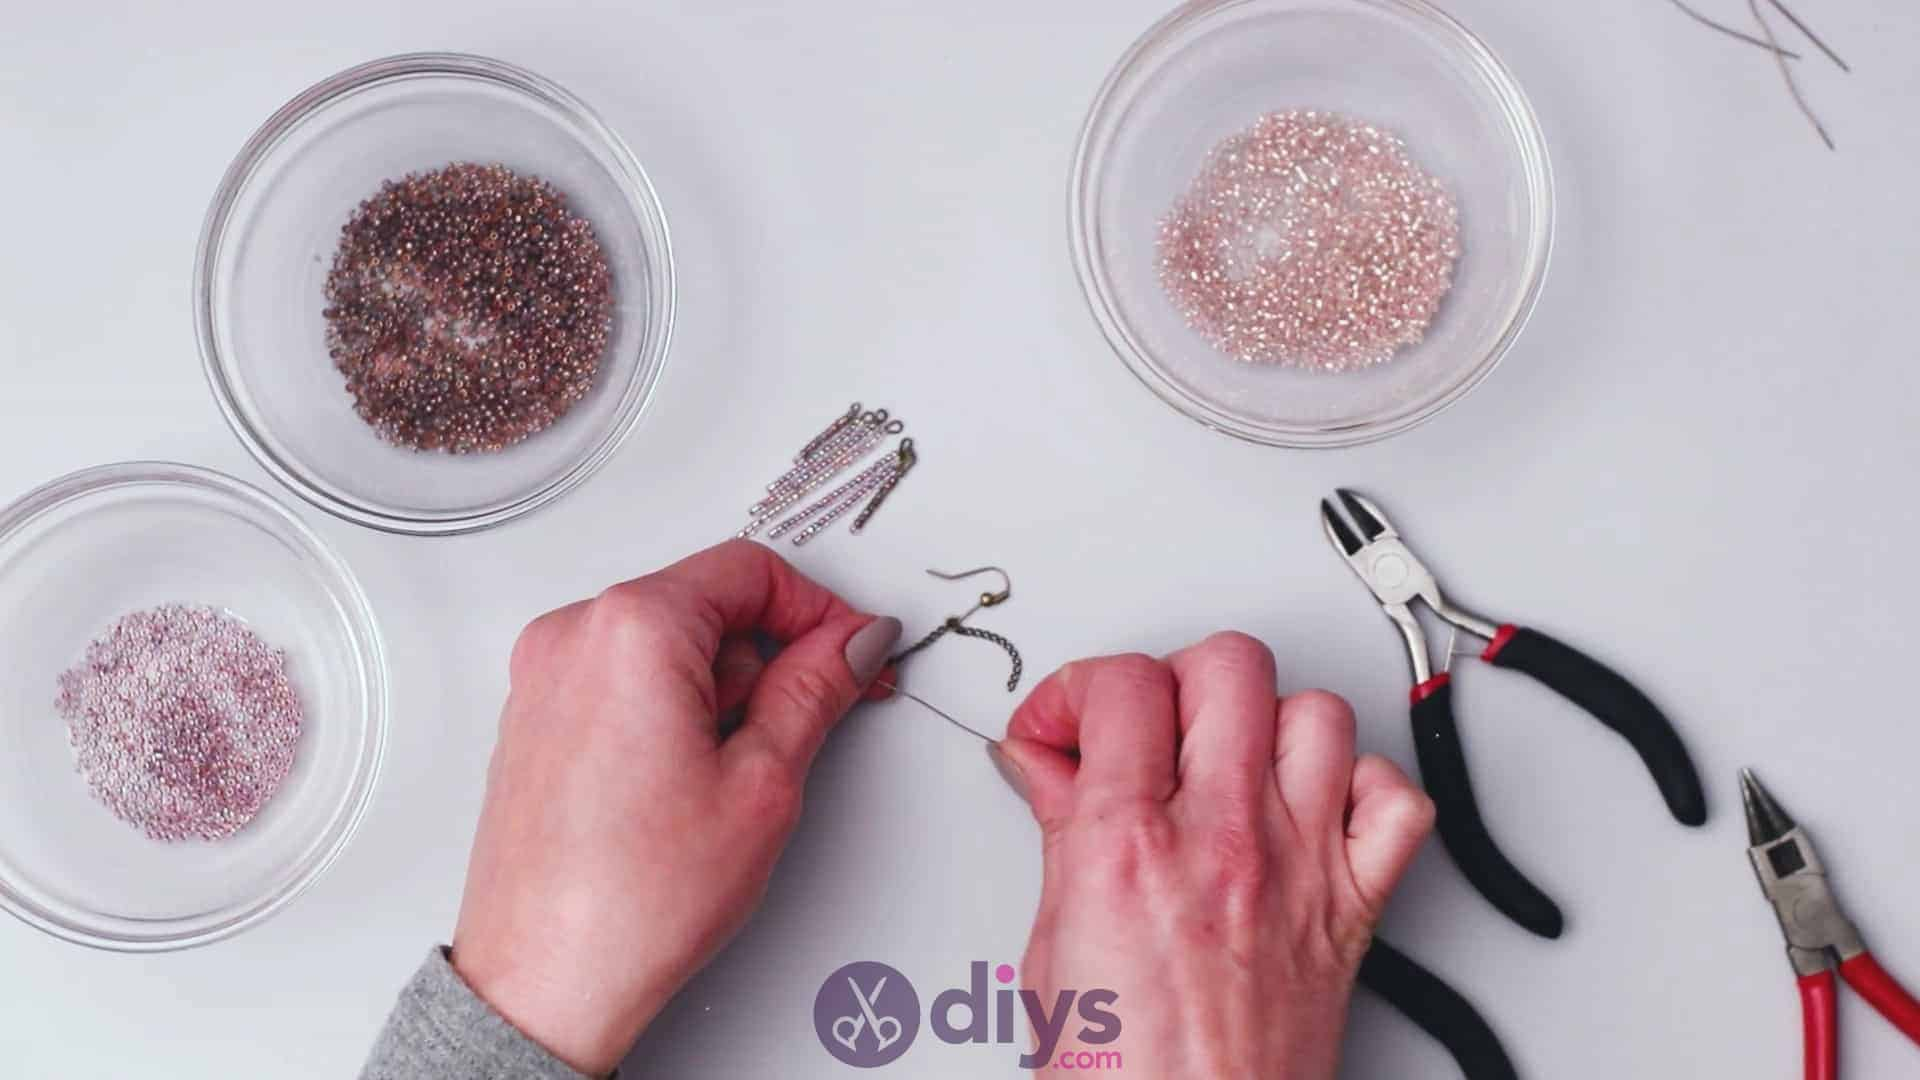 Diy seed bead fringe earrings step 6